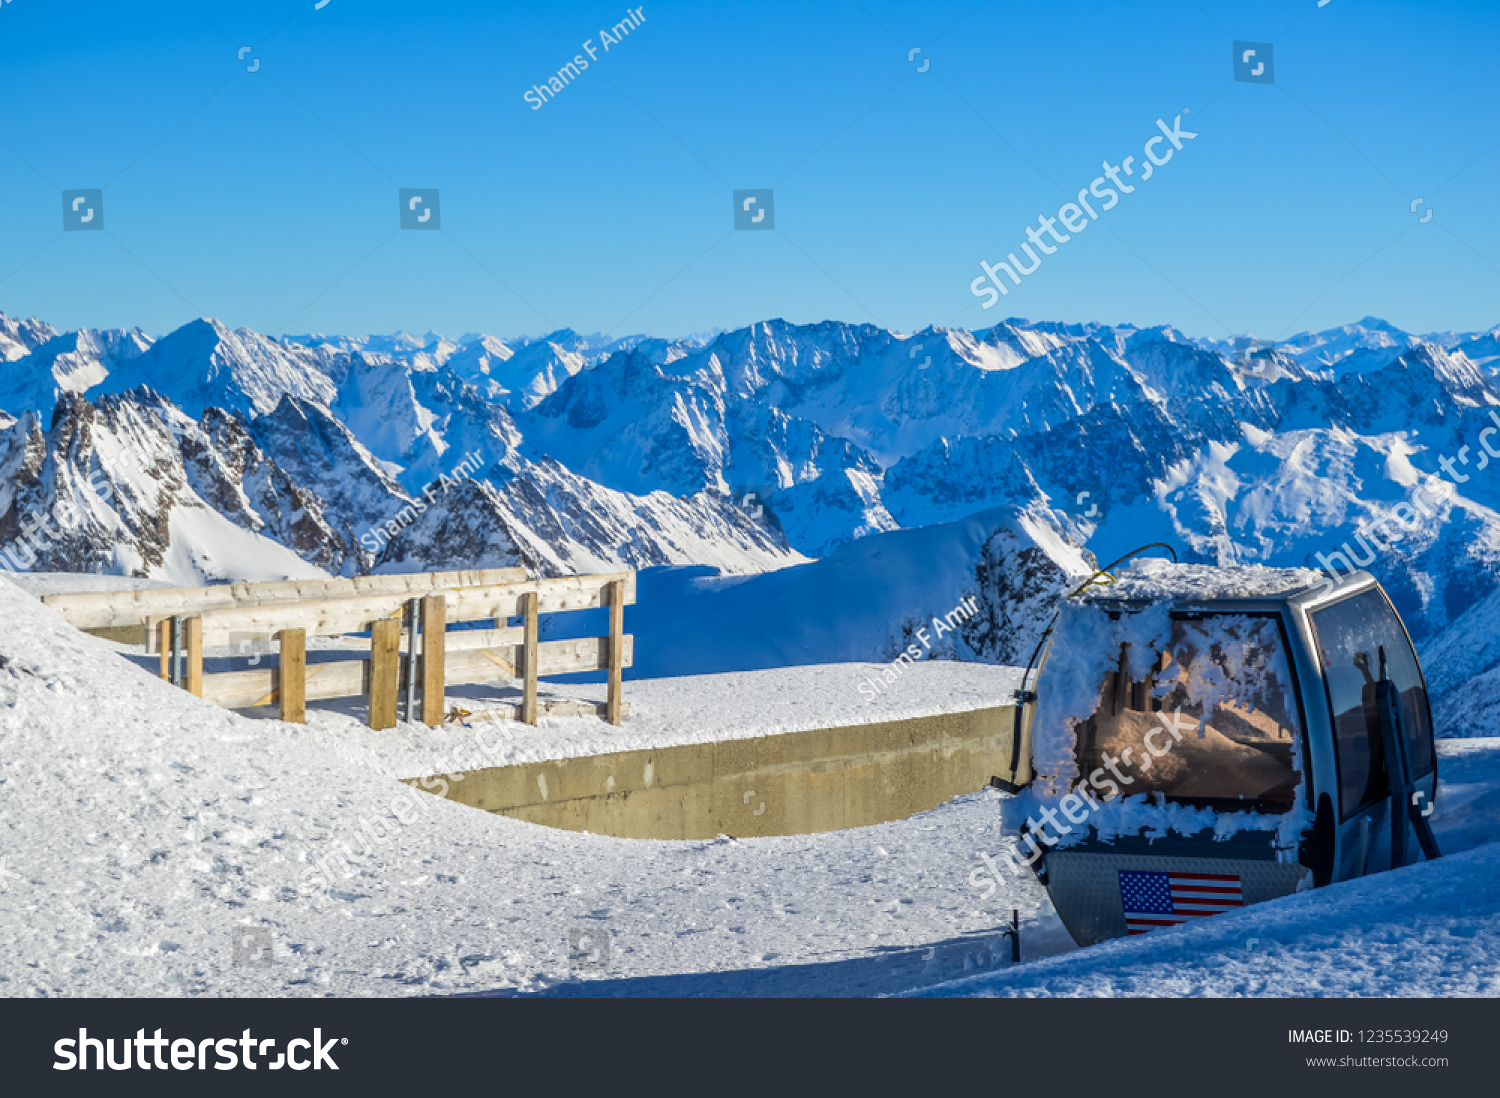 A deserted and destroyed cable car on Mount Titlis Switzerland covered with snow